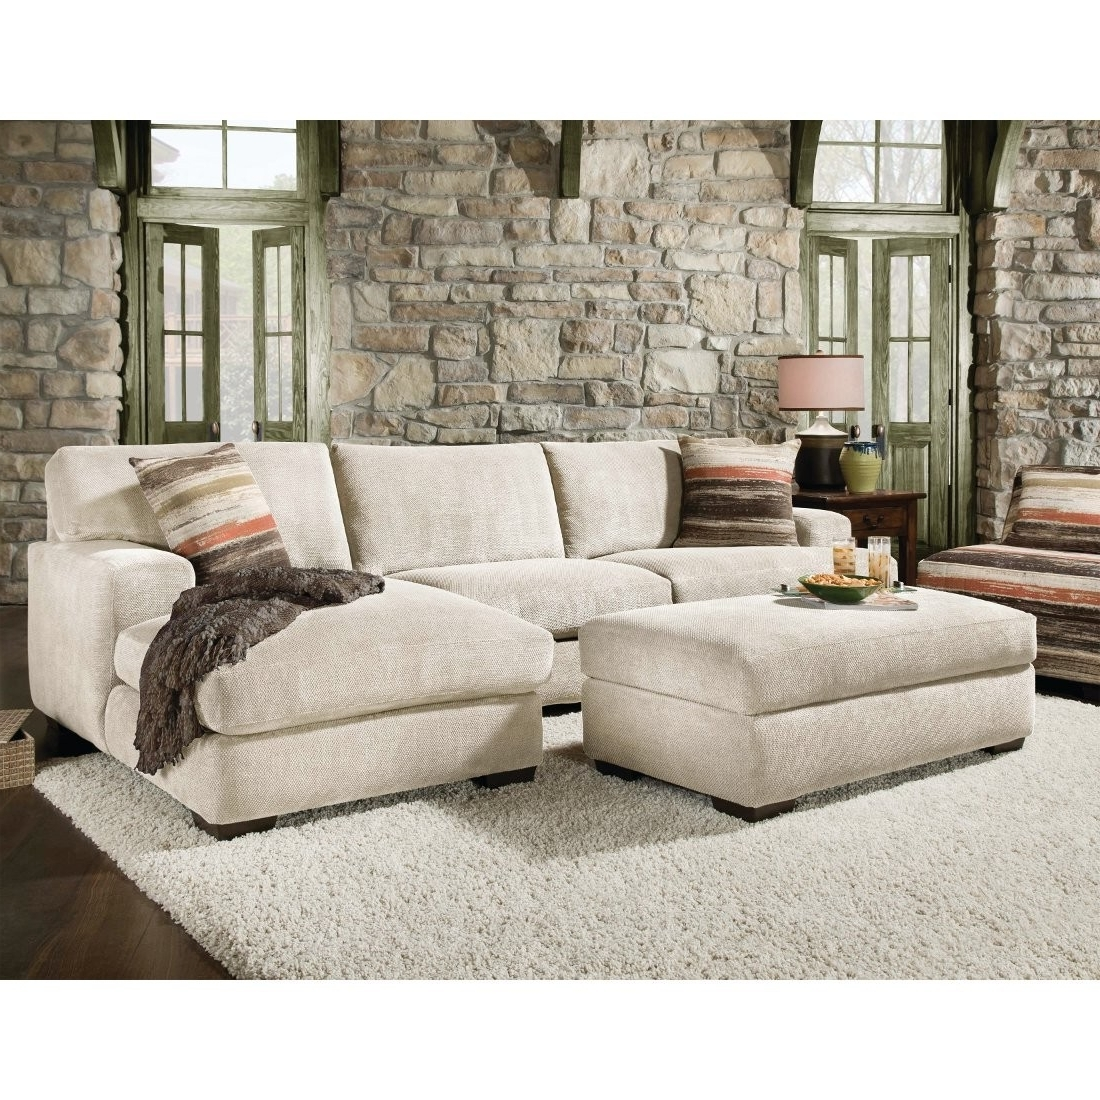 Famous Oversized Sectional Sofas With Oversized Sectional Sofa Idea — Awesome Homes : Super Comfortable (View 5 of 20)